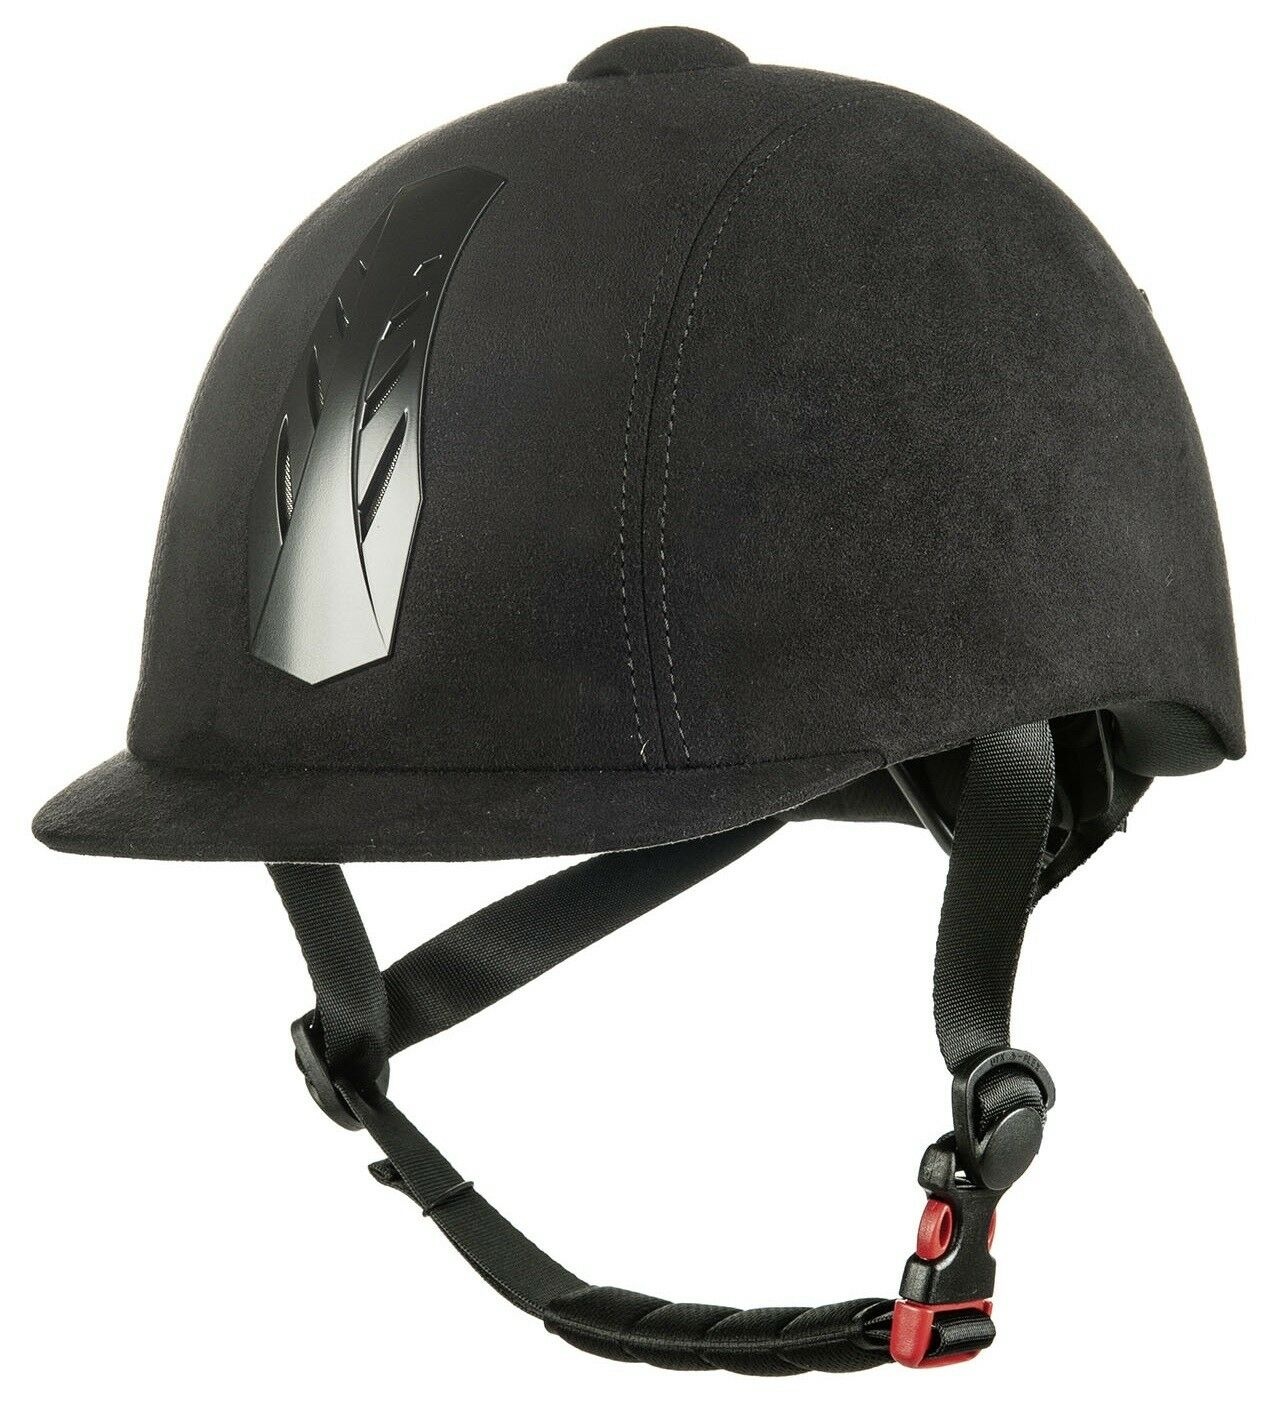 HKM Horse Riding Helmet Hat New Air Stripe With Dial System Vented Breathable VG